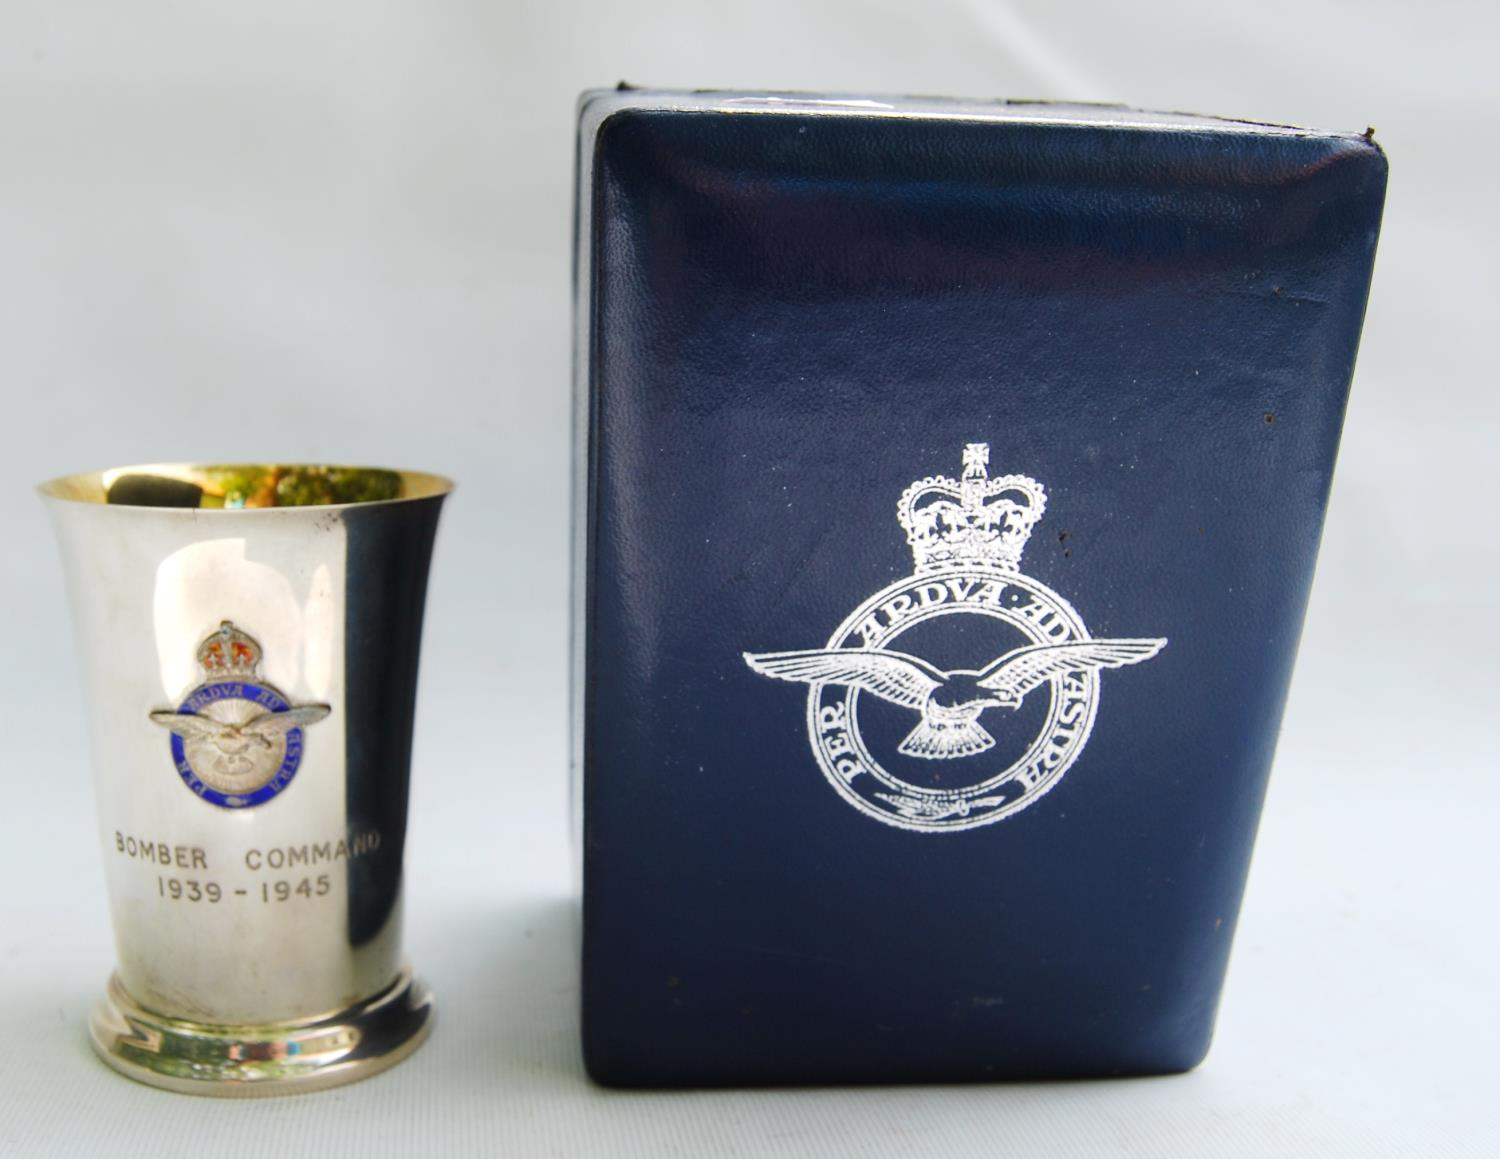 RAF silver beaker engraved, 'Bomber Command 1939-1945' with applied enamel badge and gilt lining,